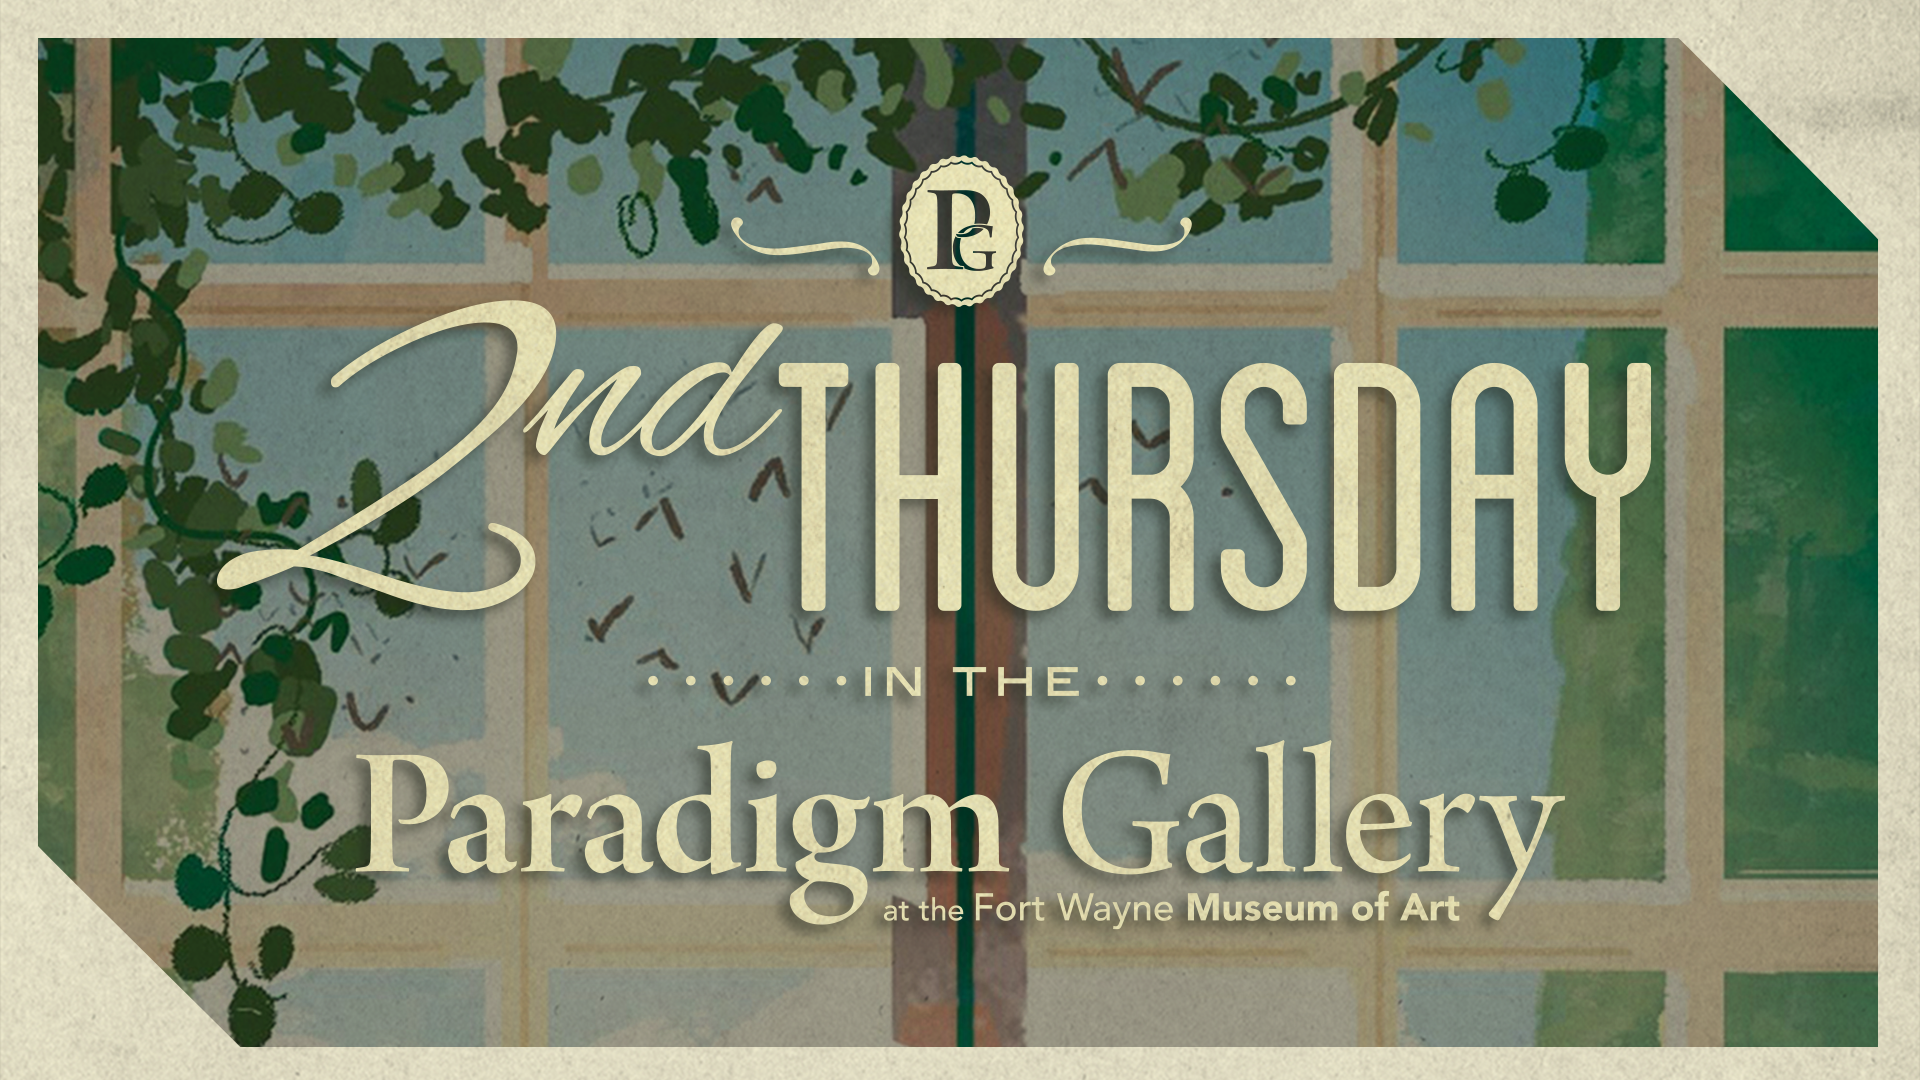 2nd Thursday in the Paradigm Gallery